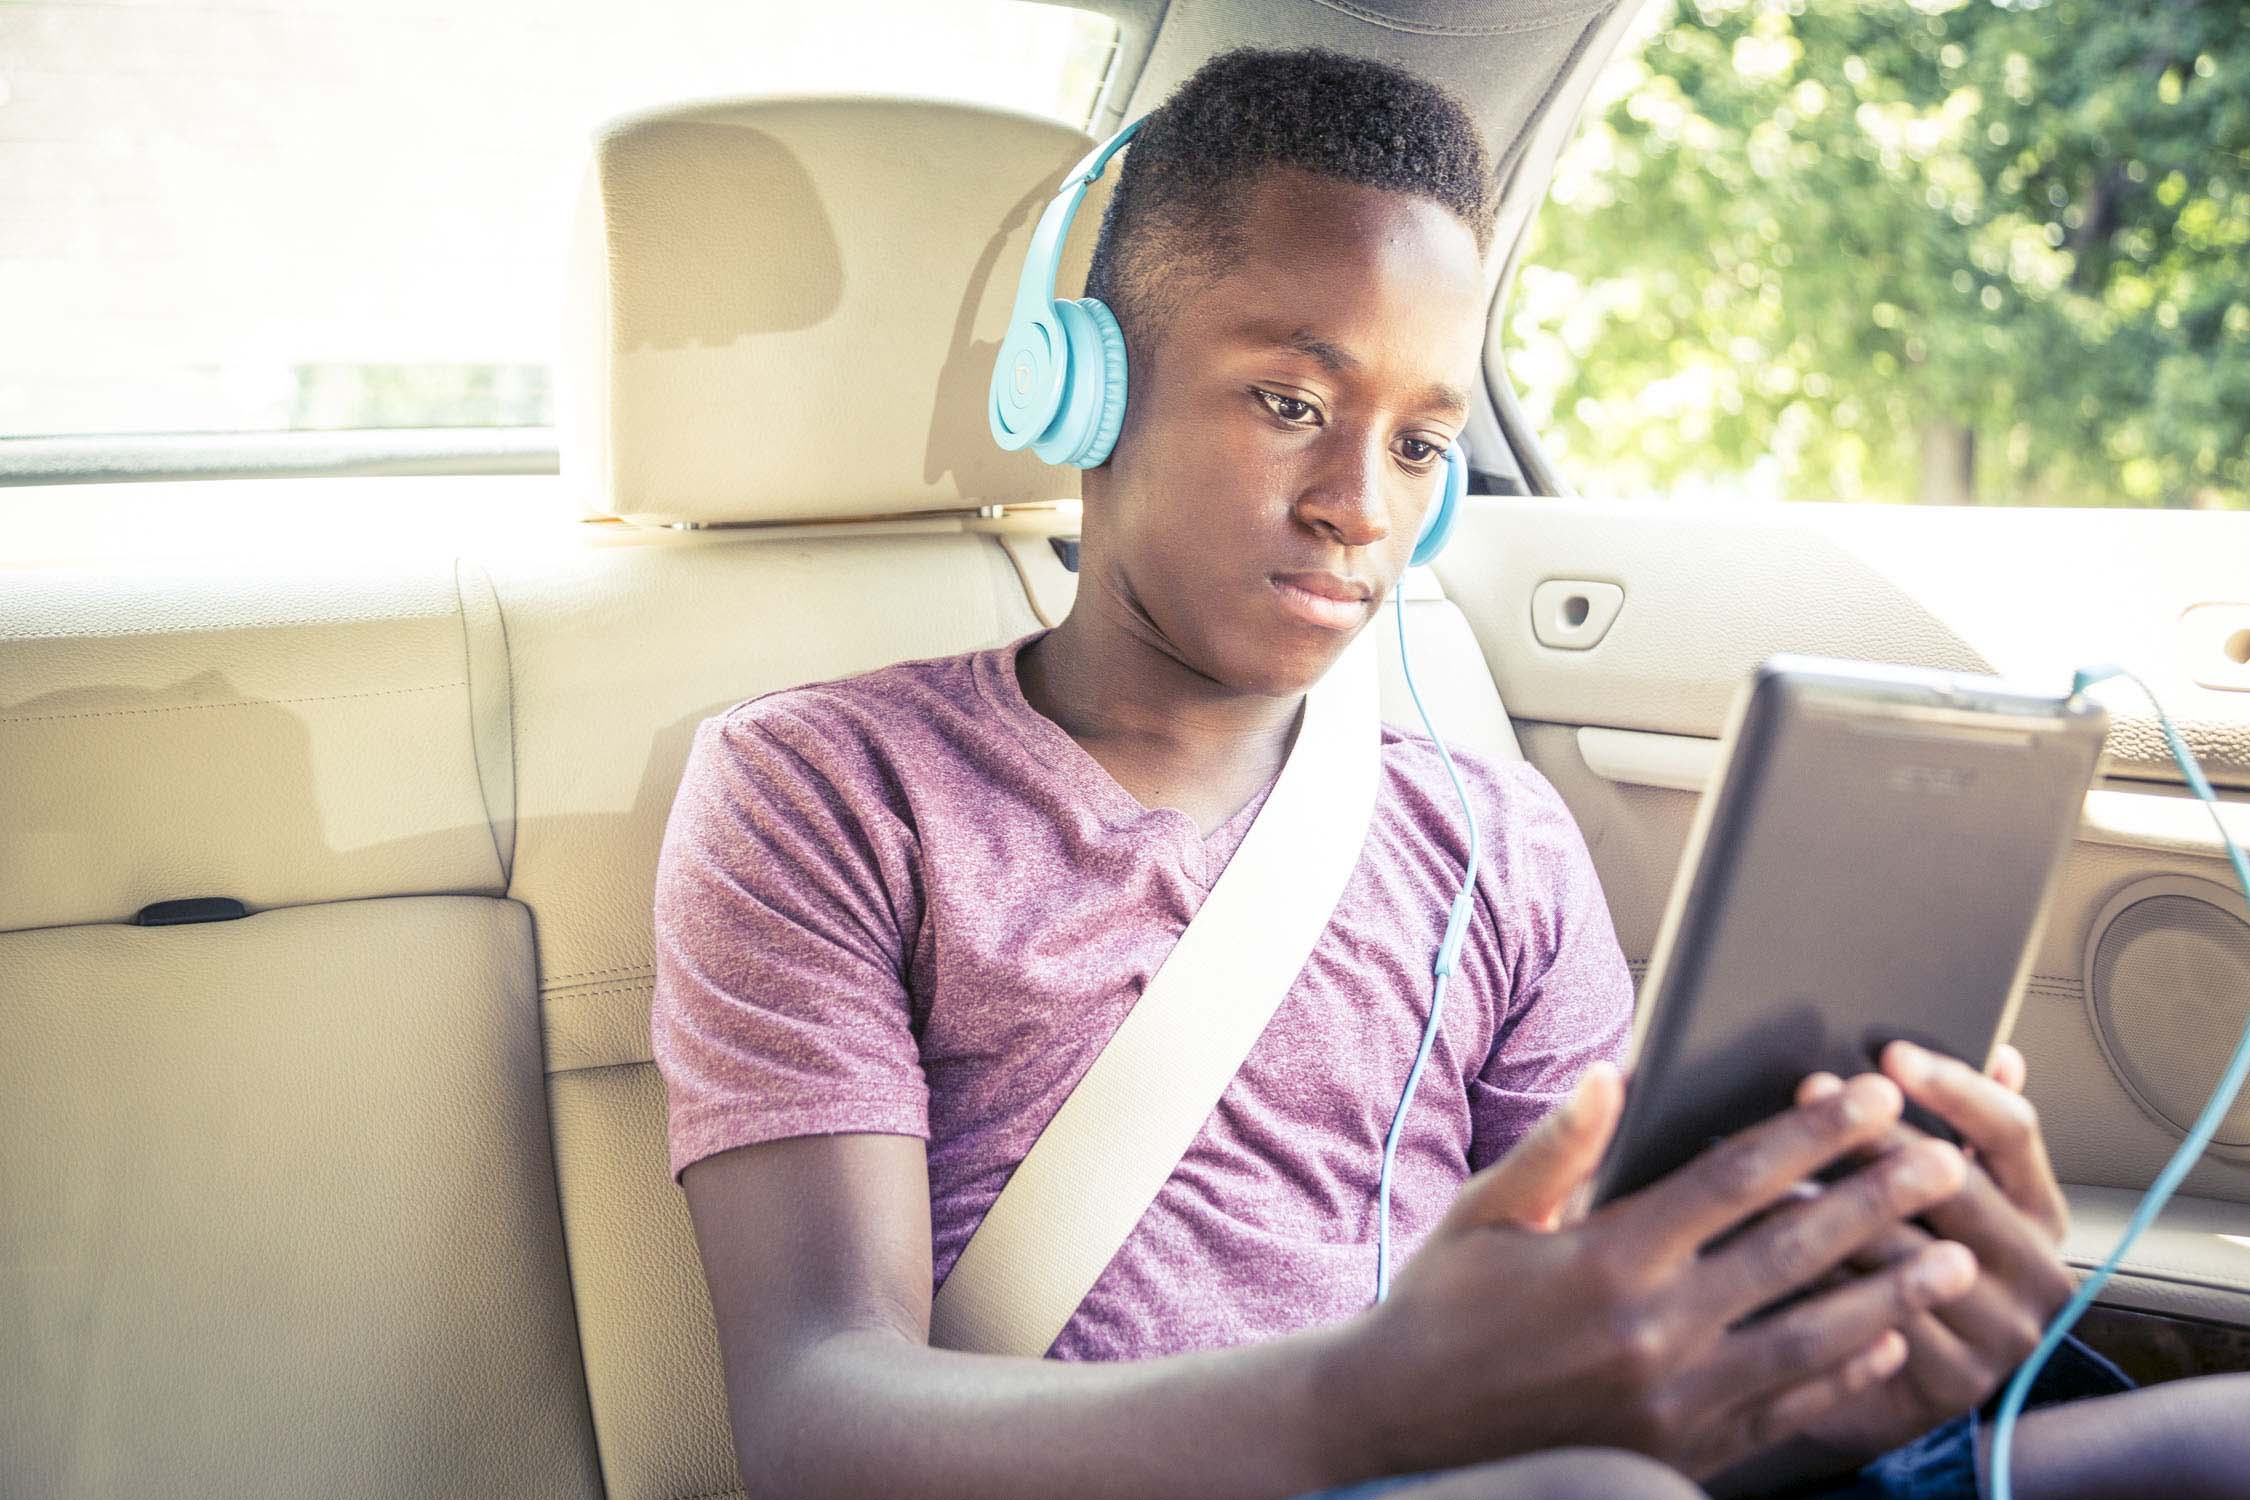 Are we there yet? Audiobooks for long car rides.